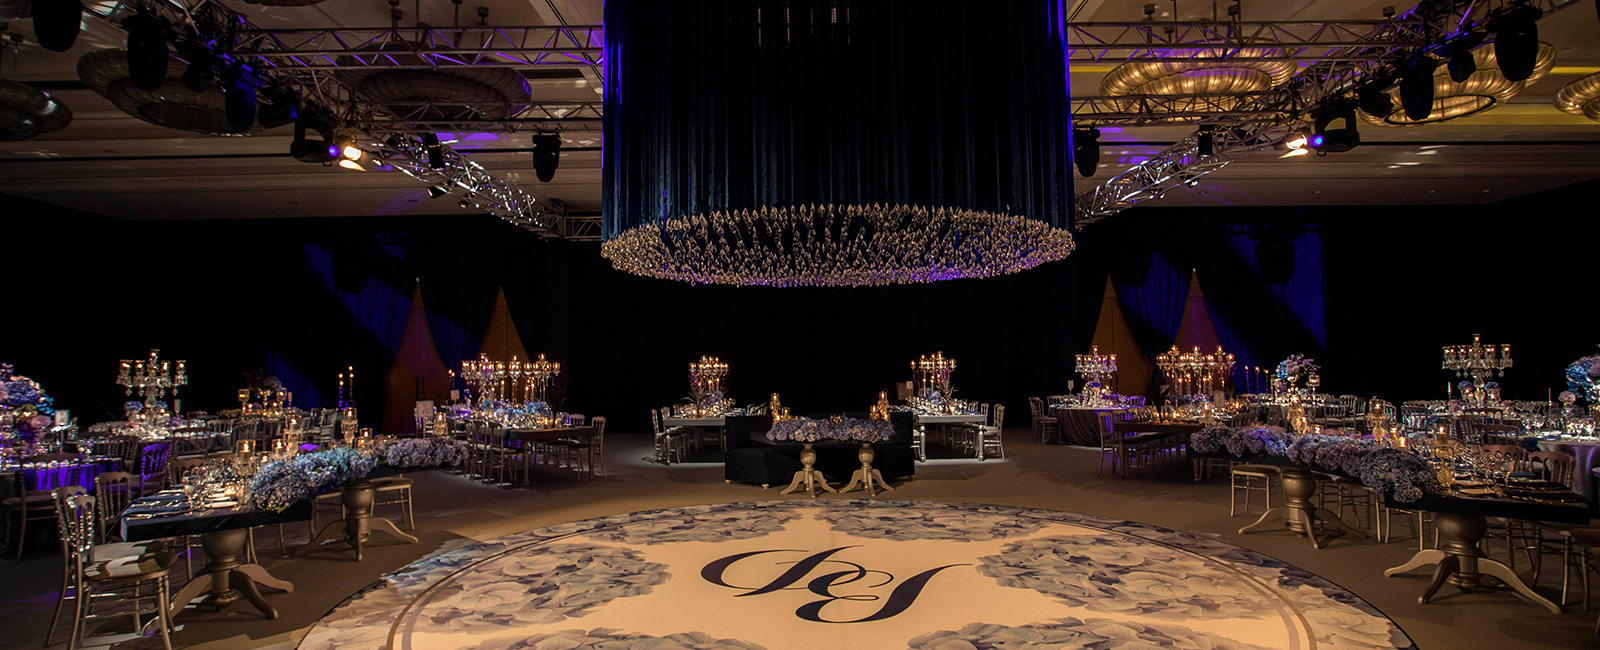 Blue Themed Engagement Party at the Four Seasons